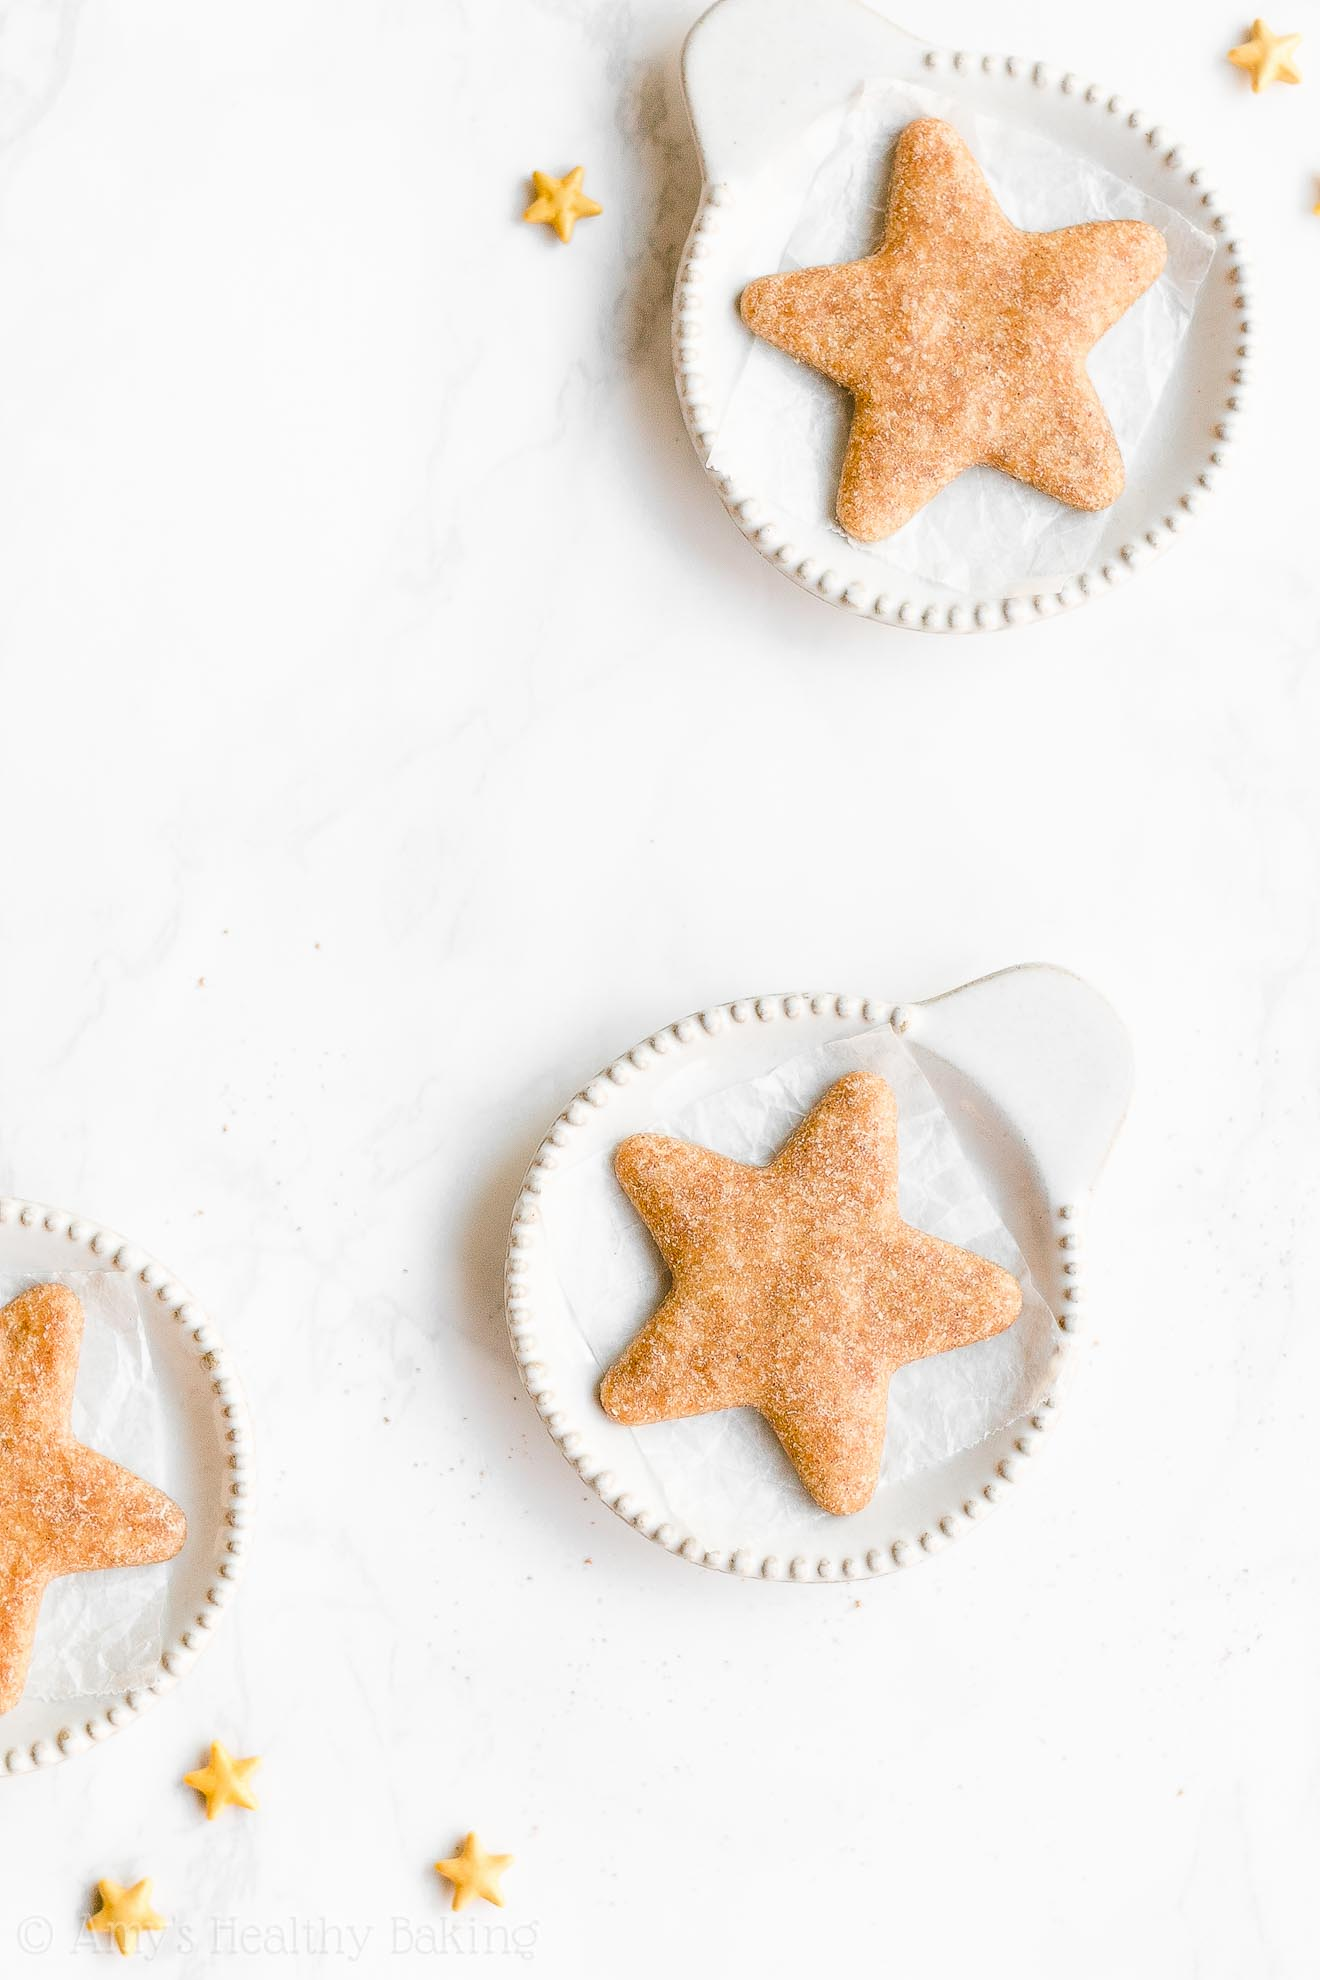 Easy Healthy Vegan Gluten Free Low Fat Eggnog Sugar Cookies